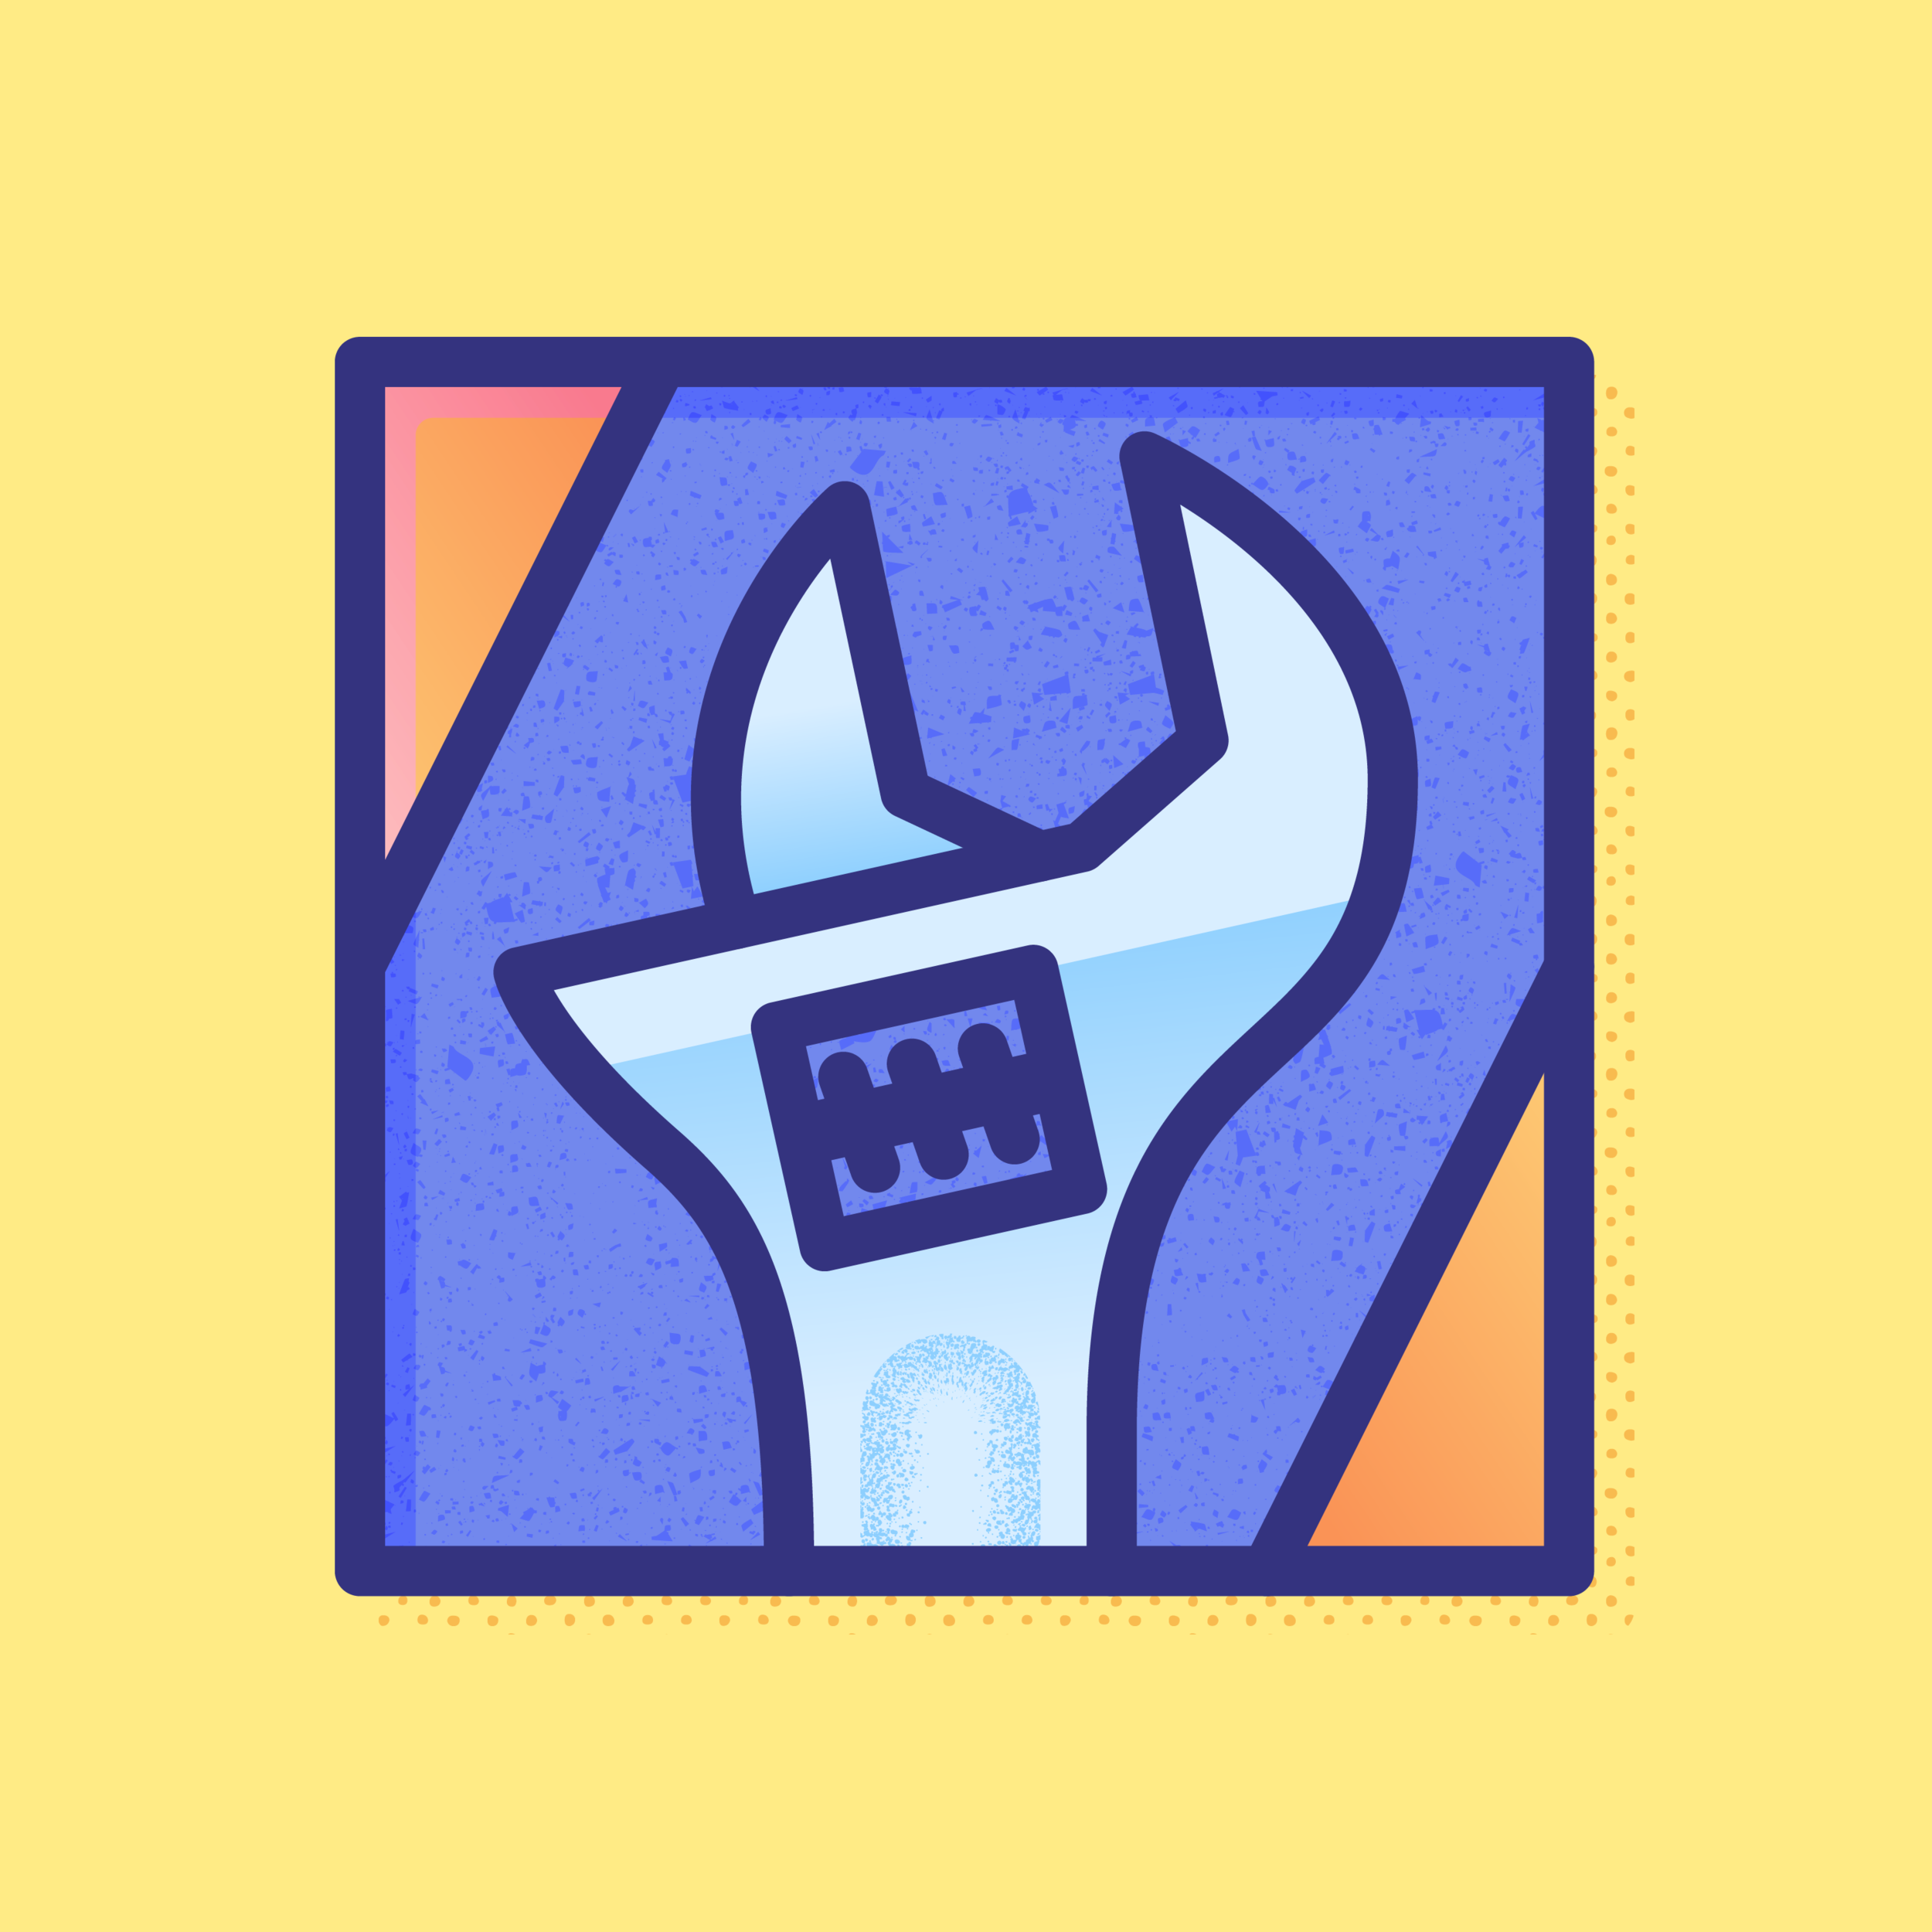 010 wrench IG.png